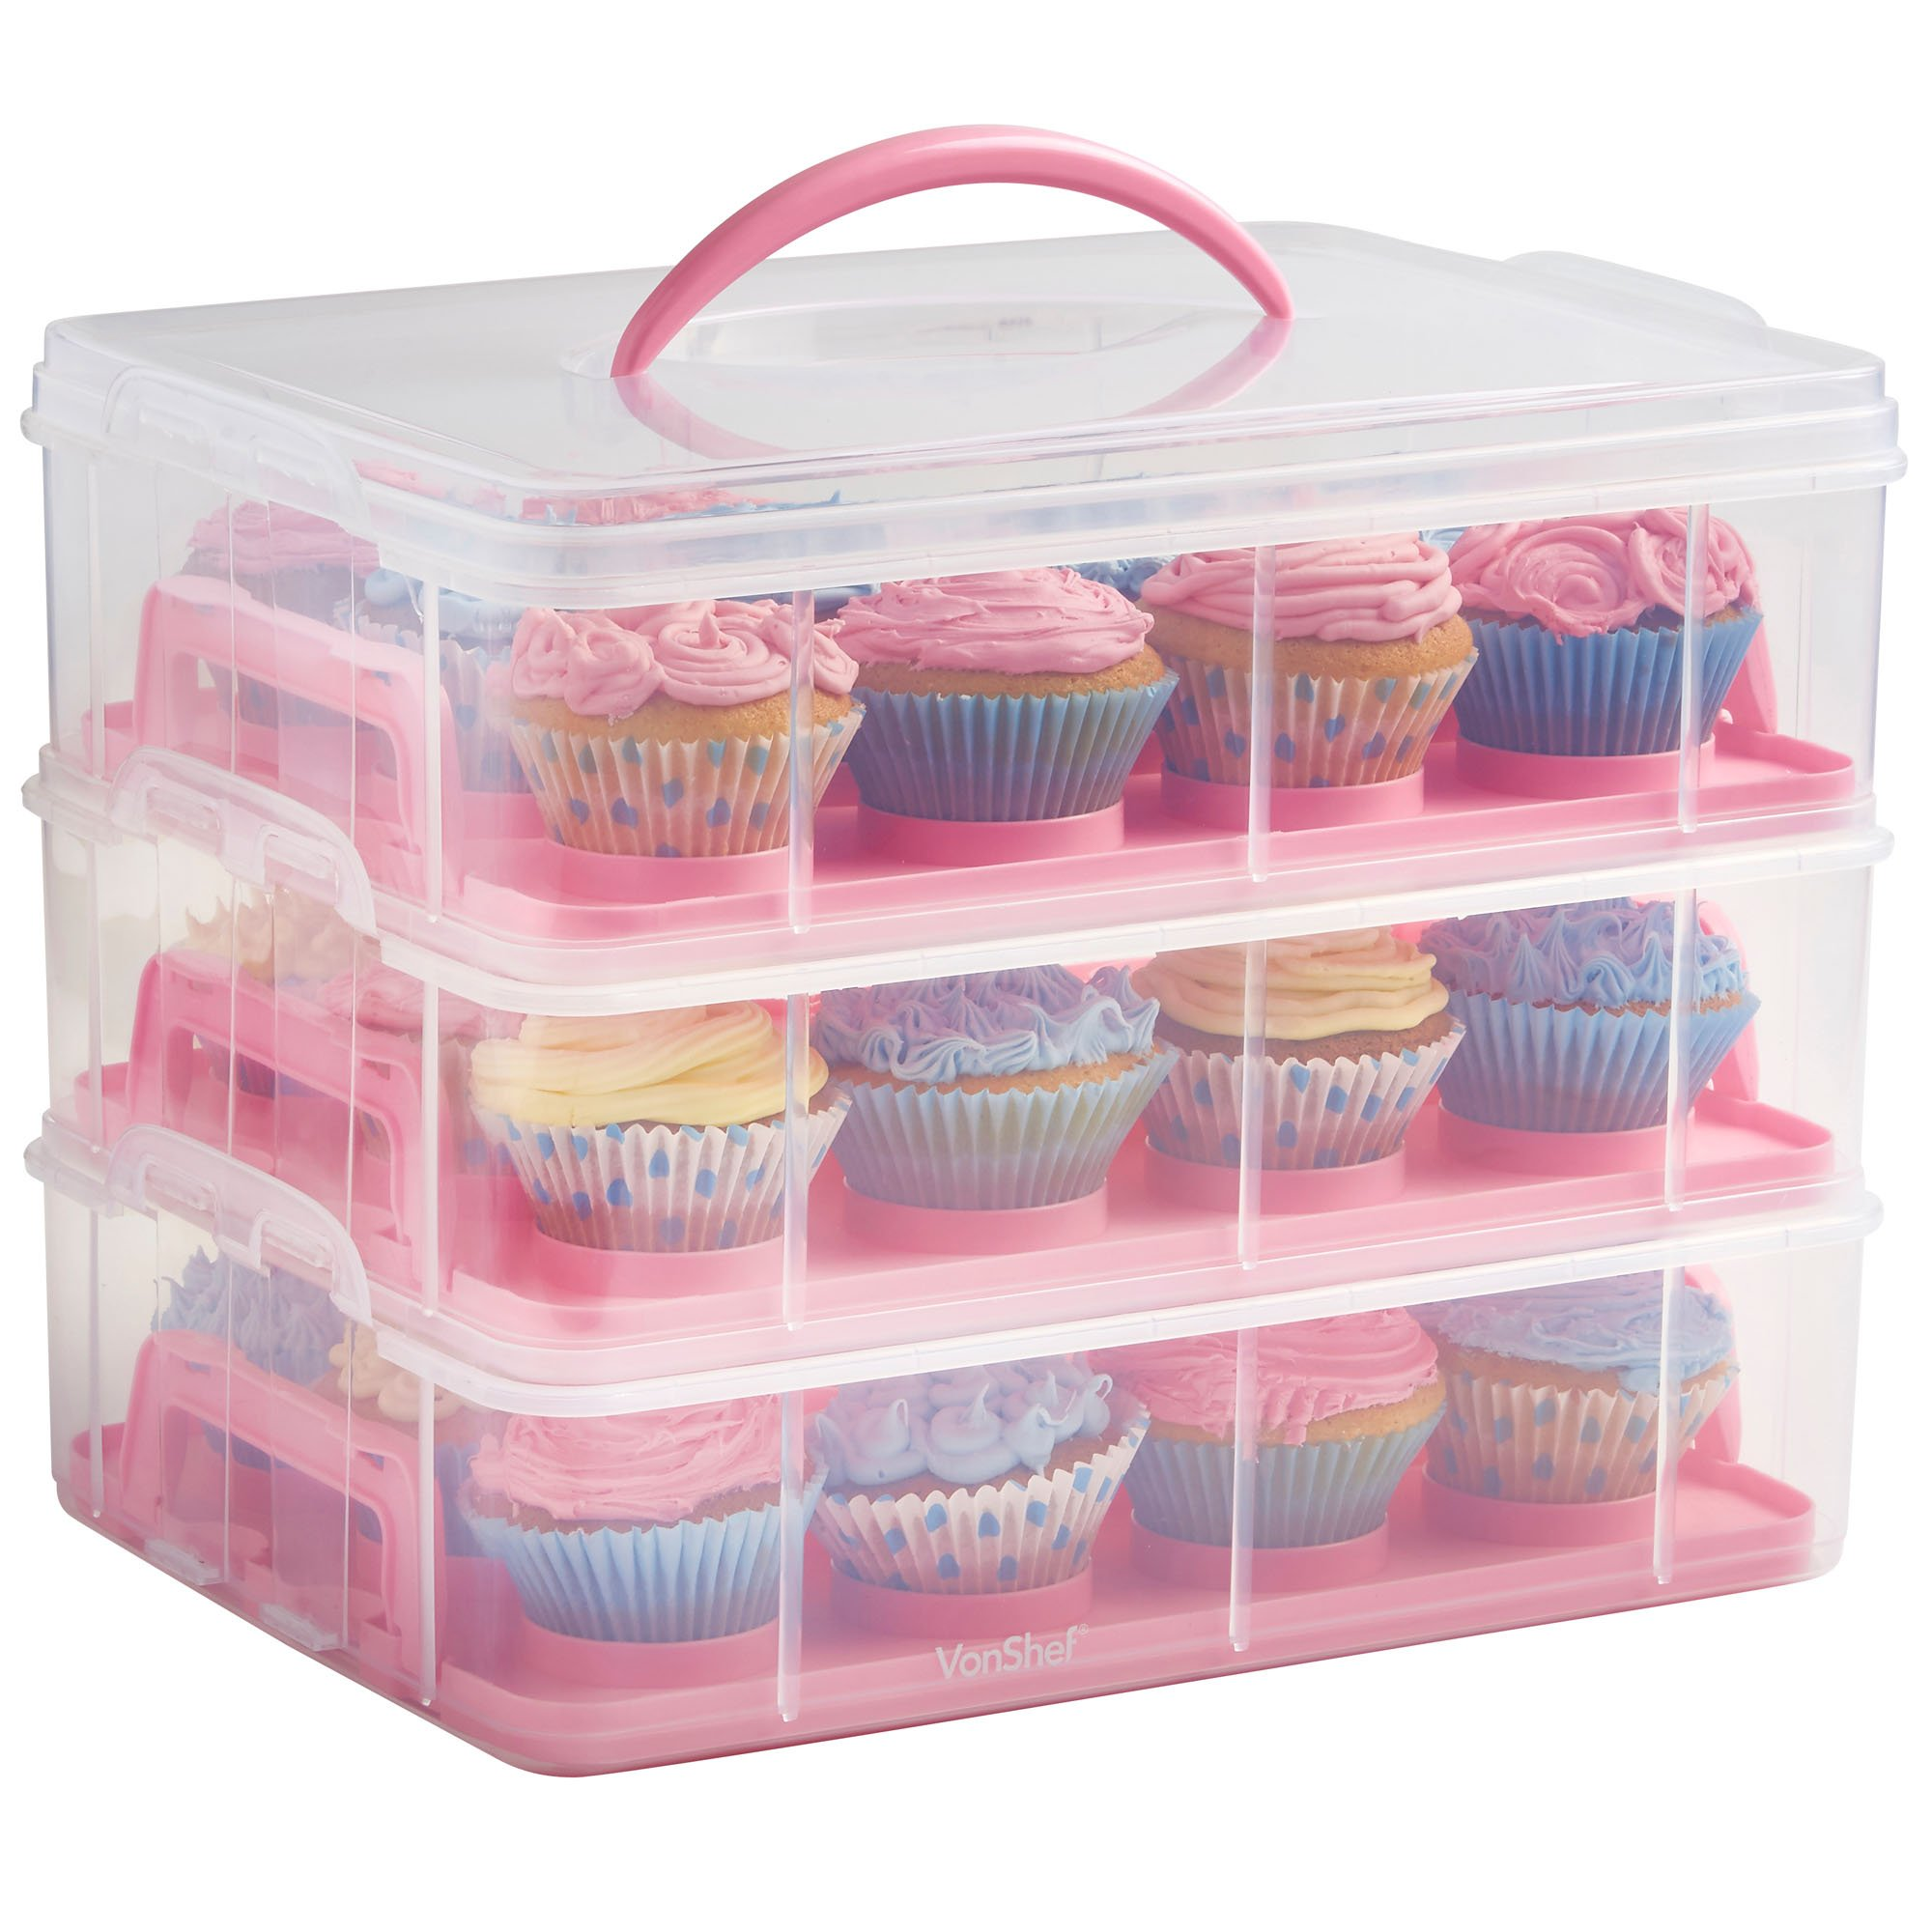 VonShef Snap and Stack Pink 3 Tier Cupcake Holder & Cake Carrier Container - Store up to 36 Cupcakes or 3 Large Cakes by VonShef